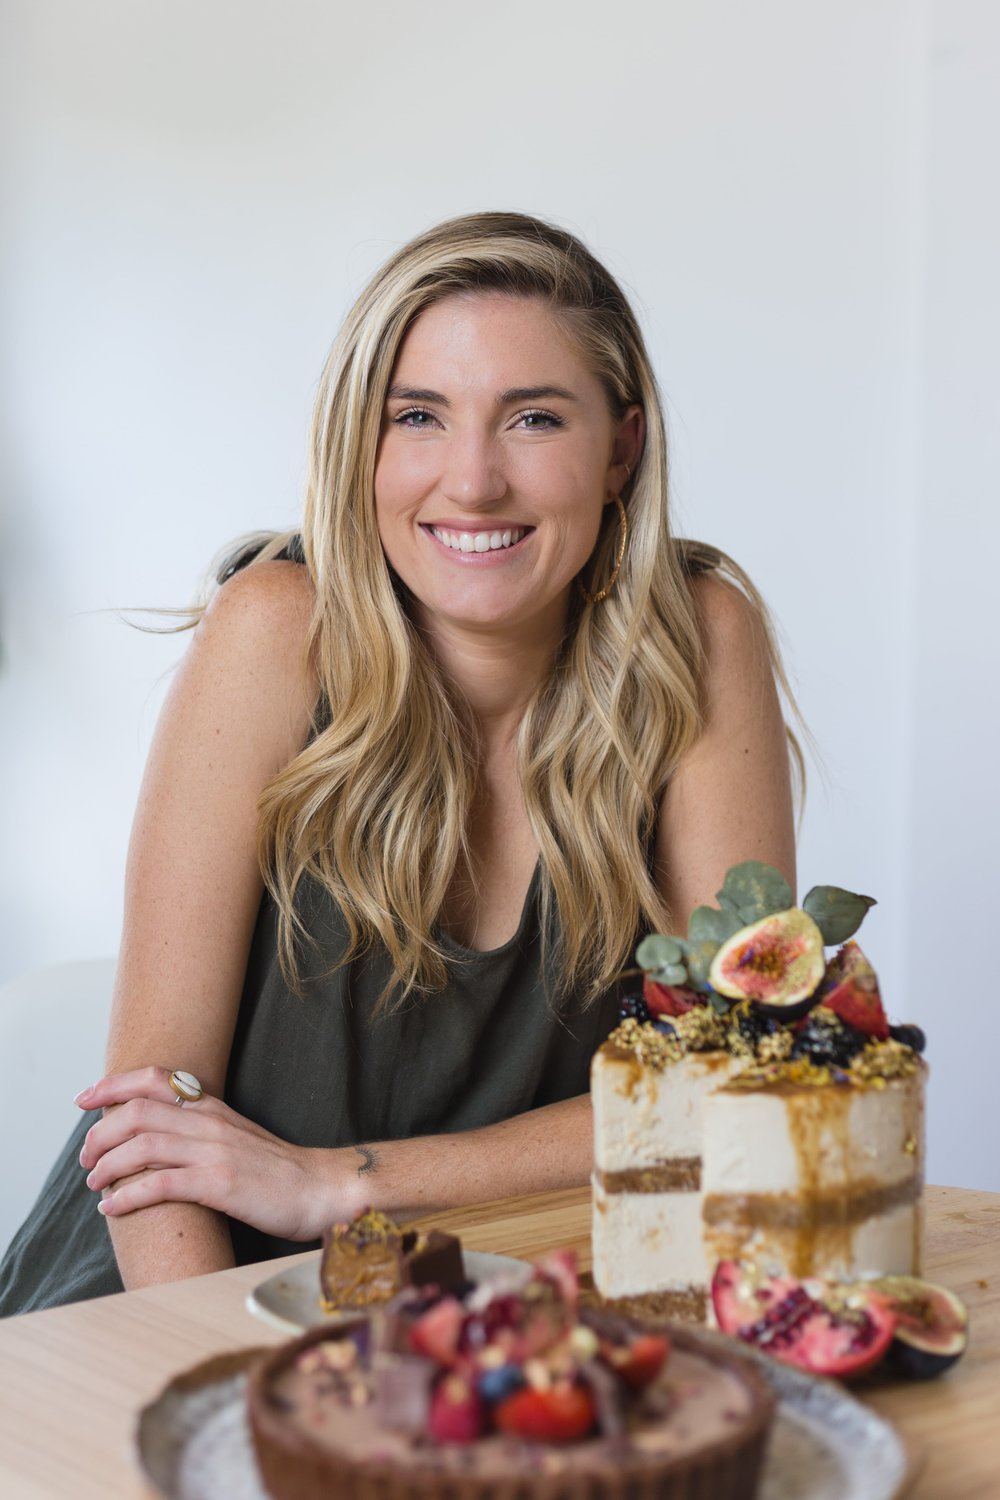 "The Kindness Echoes / Organic+ Vegan Desserts - Georgia Irwin has always been a creator, but after watching a pro-vegan documentary, she found a new art form in creating vegan treats that do good by our bodies and the environment.Here, she talks about her mission for spreading kindness, how she's healed through building a business, and why you don't need to follow the ""quit your job and go for it"" type advice."